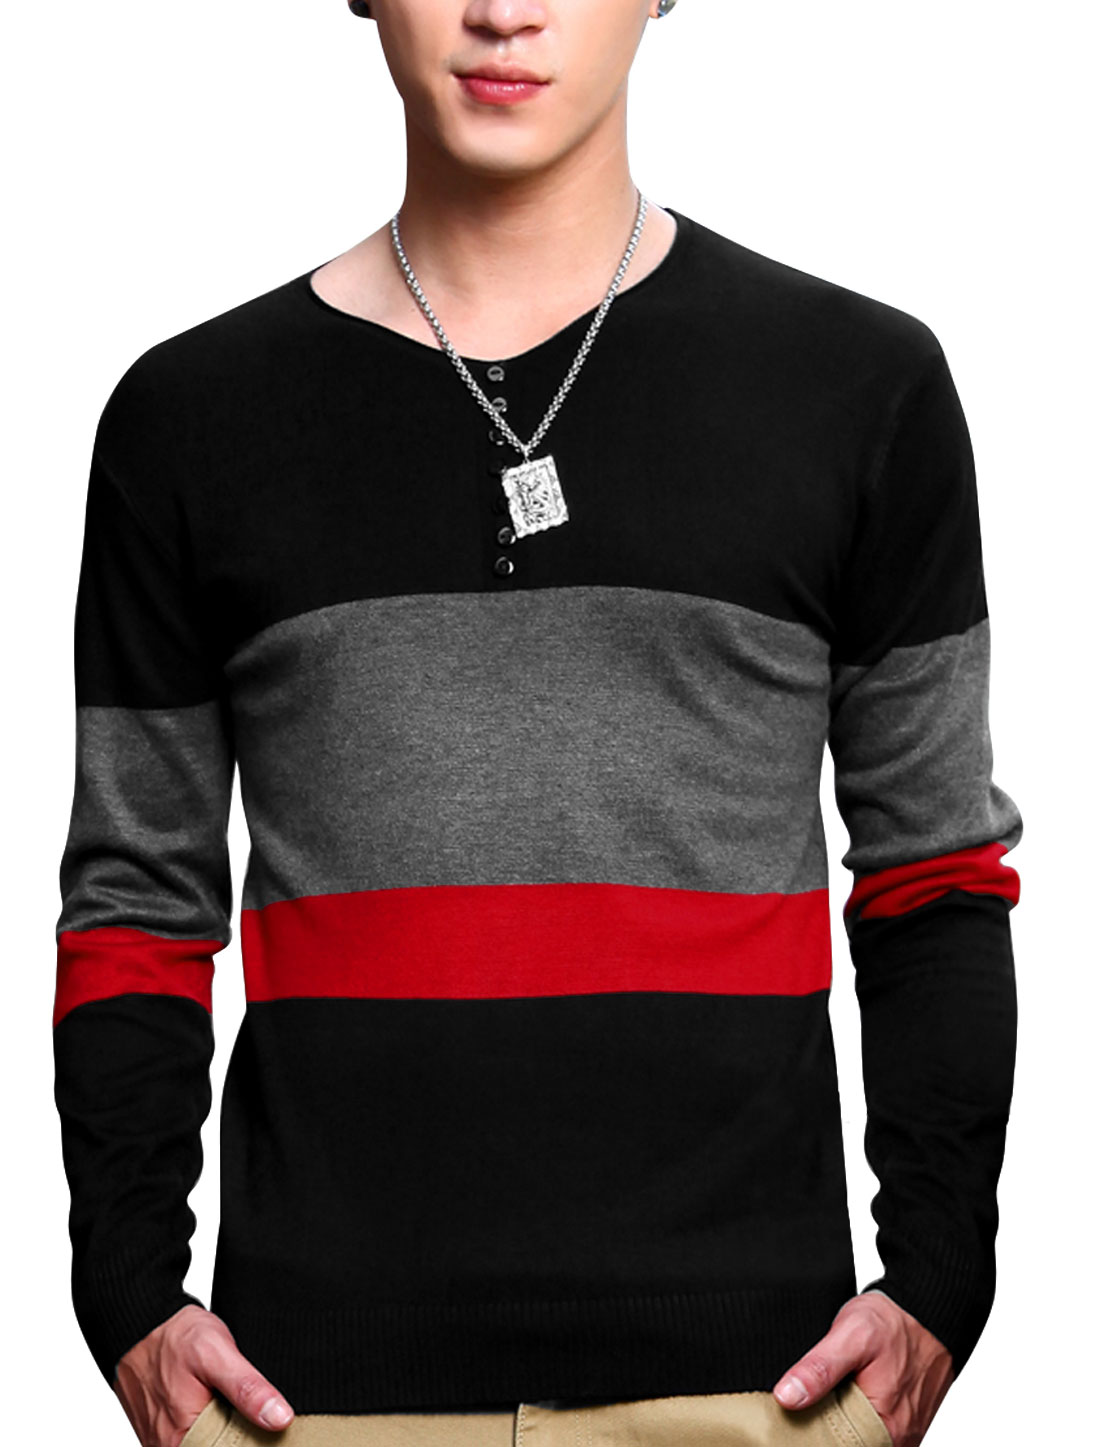 Pullover V Neck Color Block Chic Black Knit Shirt for Men M